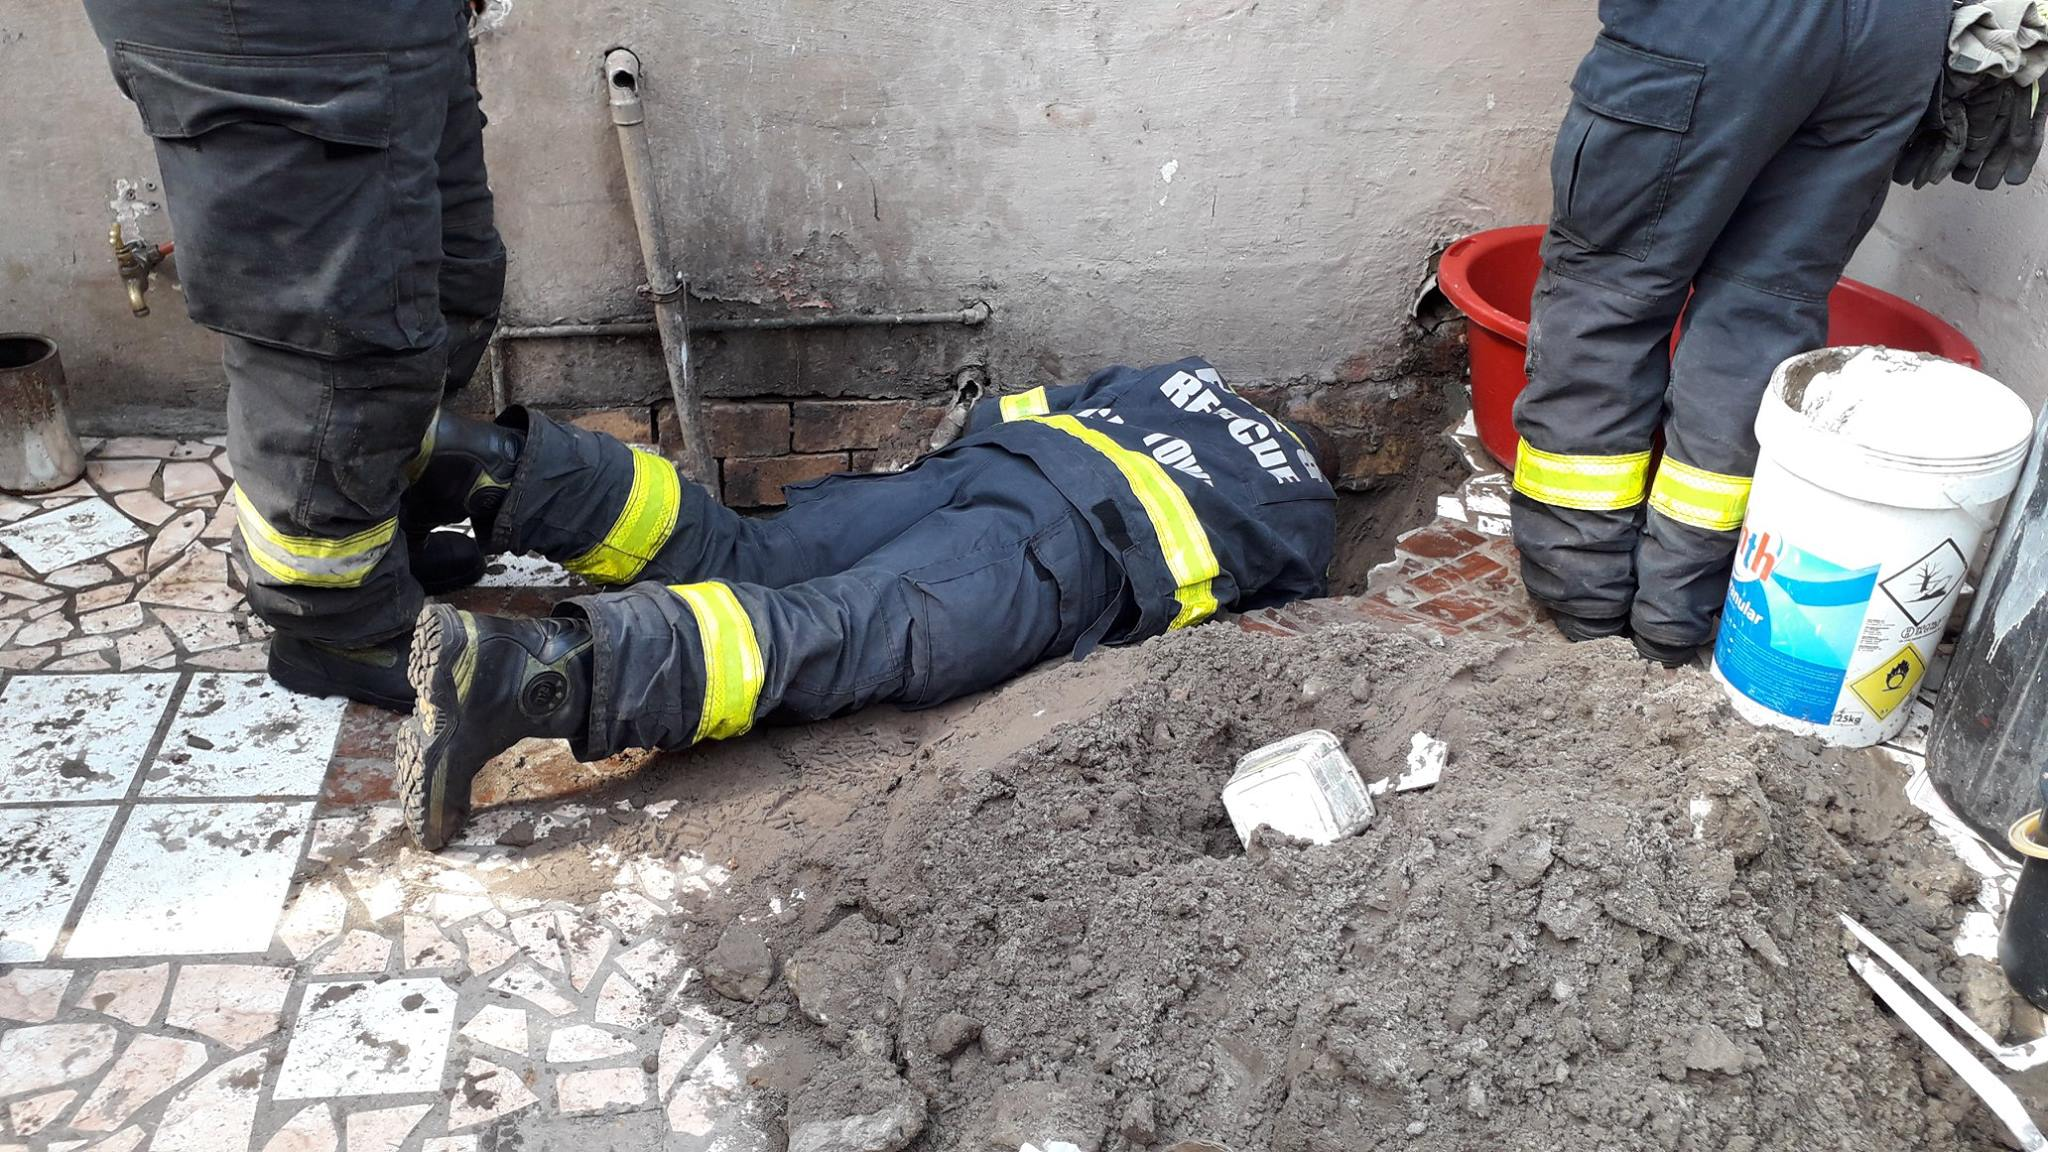 Tiny puppy recovering after 'terrifying ordeal' of being trapped in drain pipe